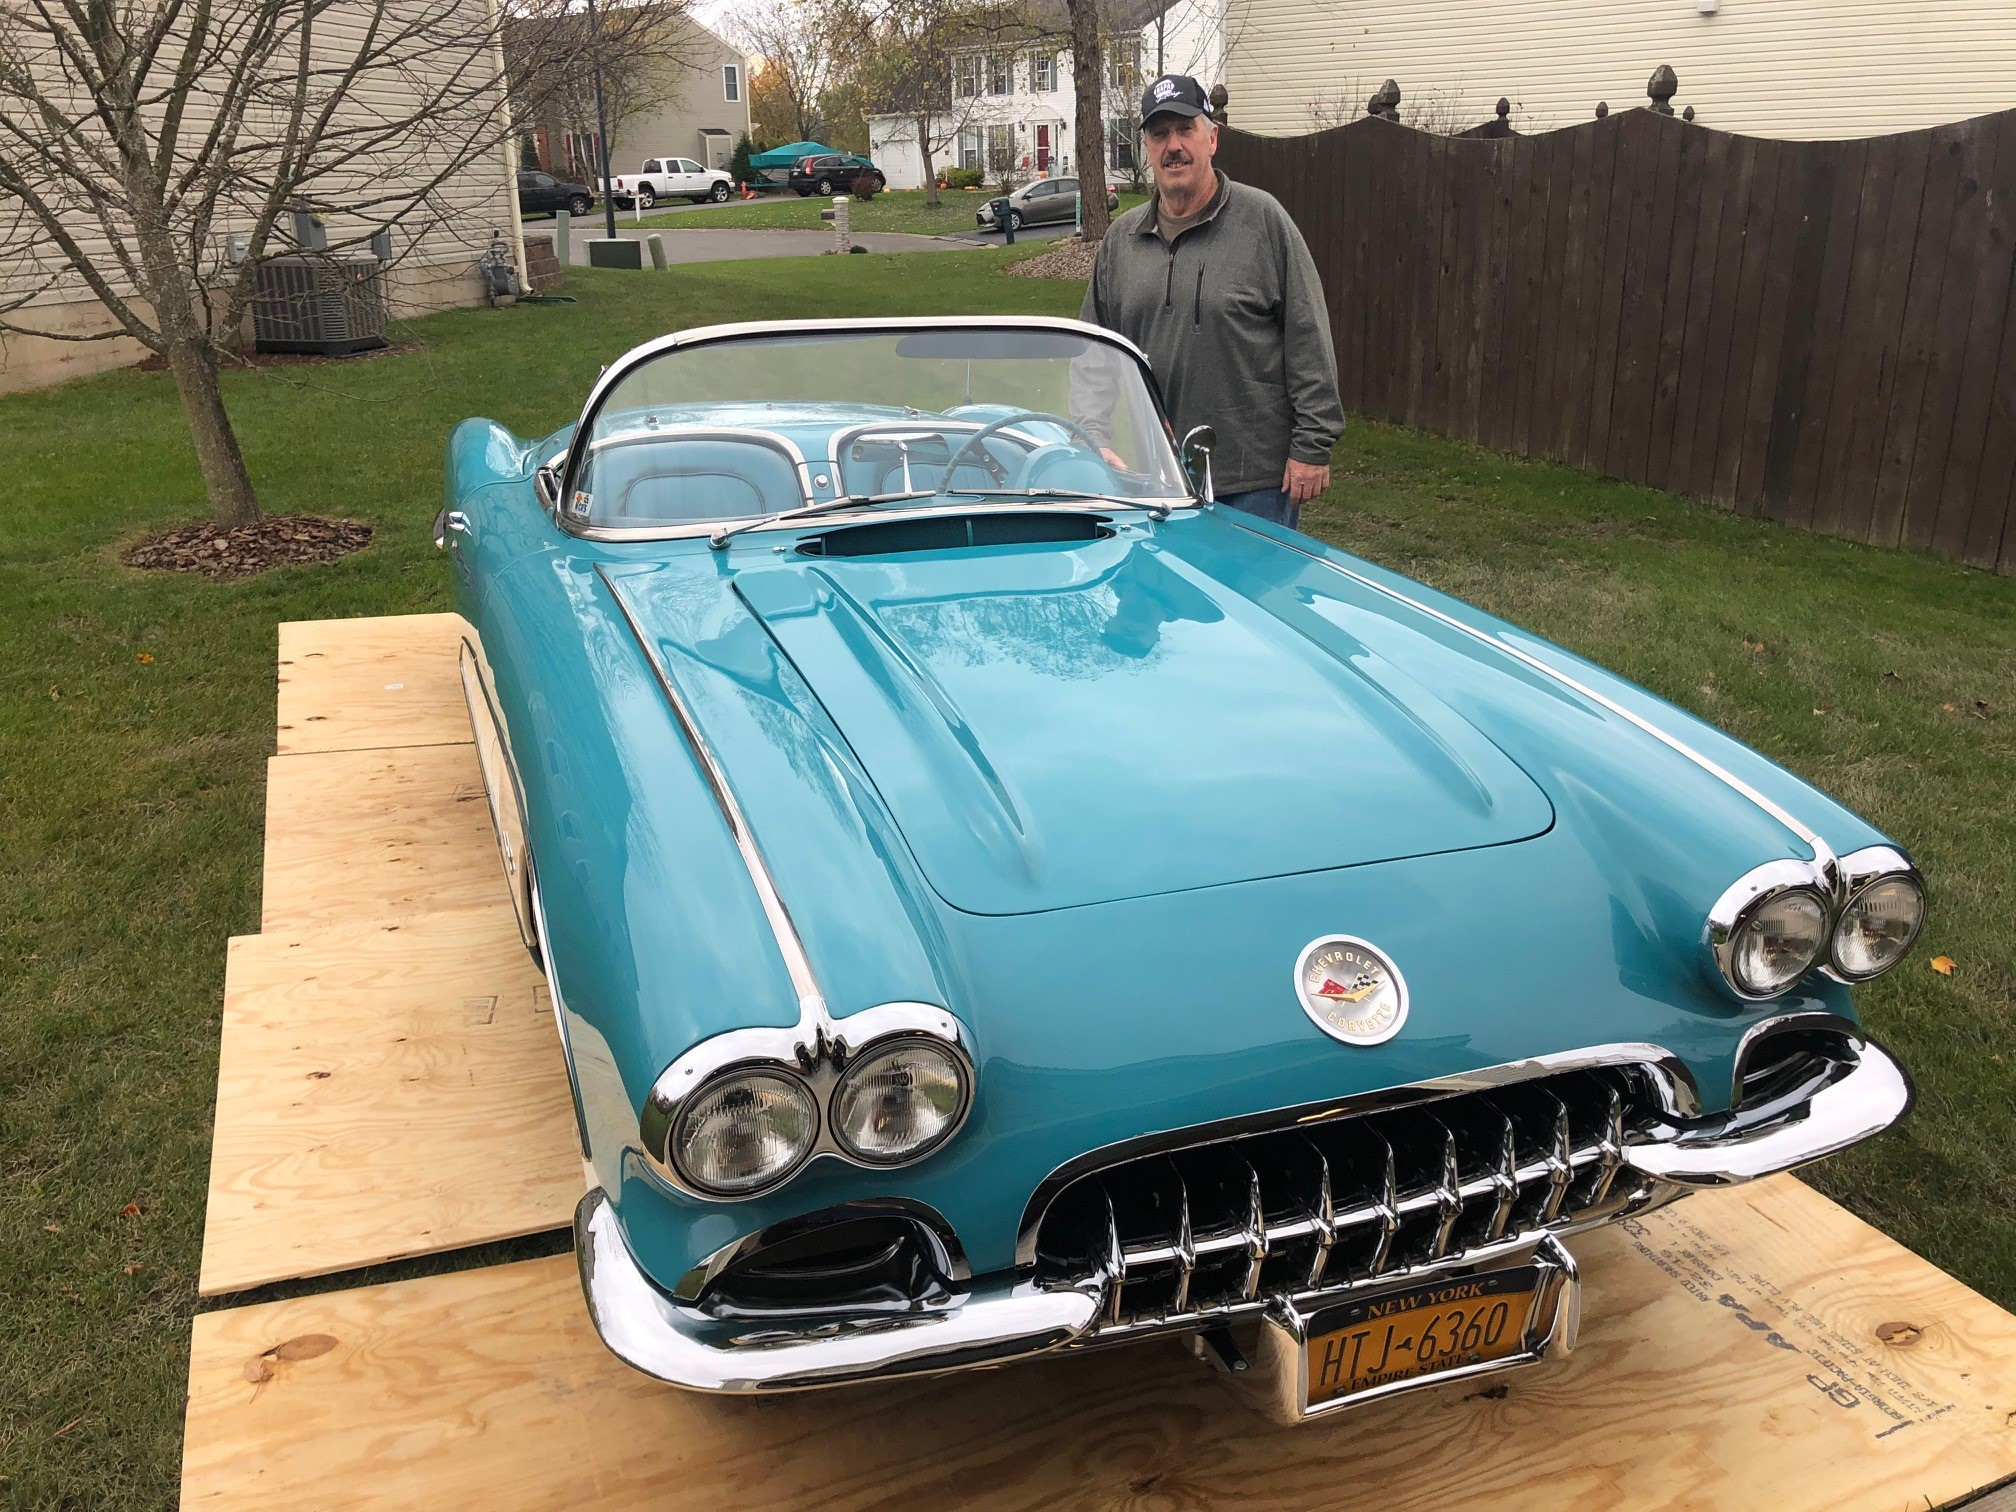 Keeping it in the family: a 1960 Corvette